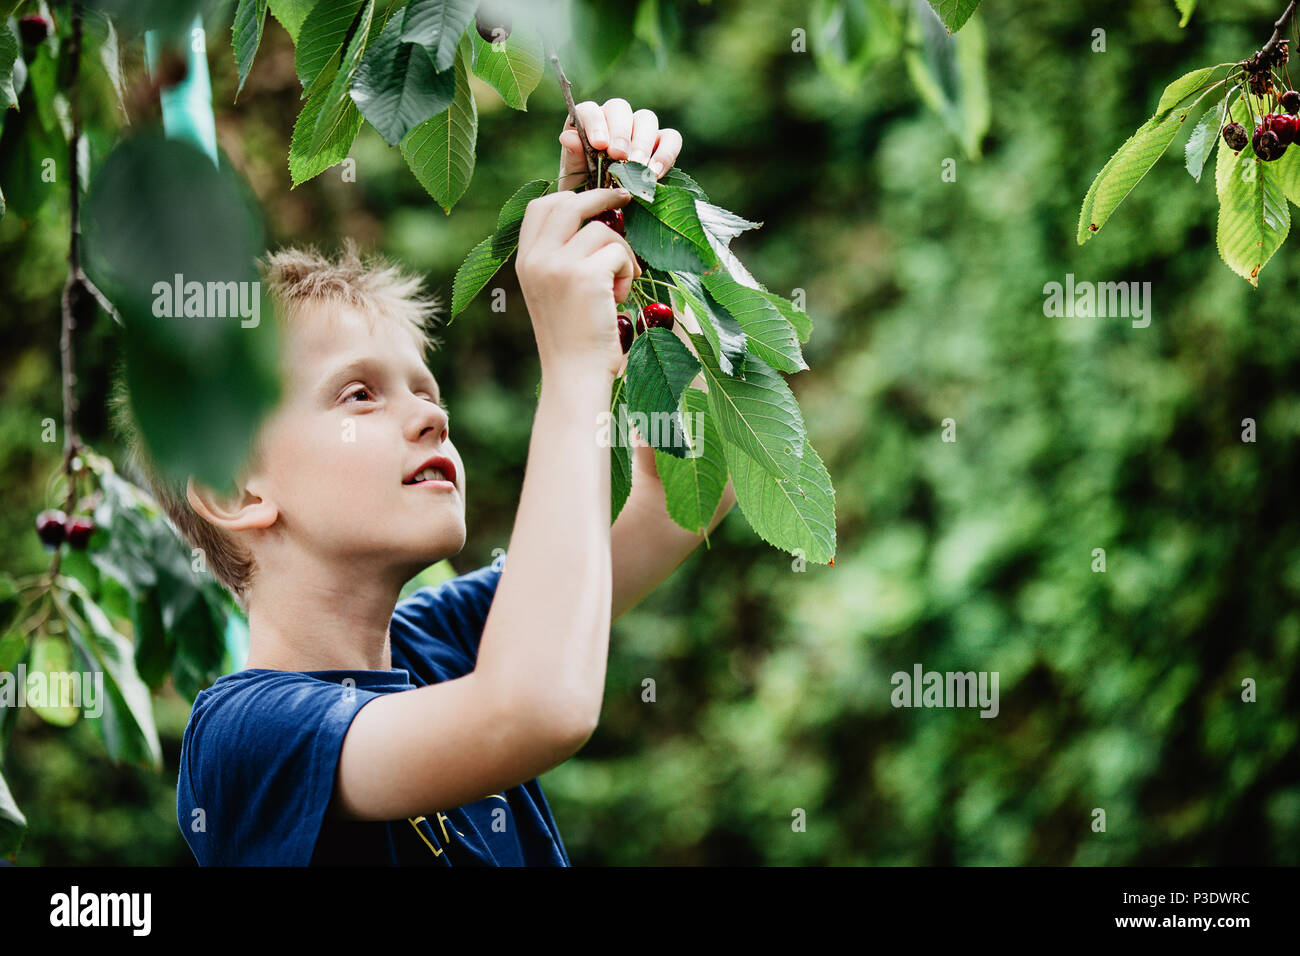 Young boy 7-9 years old picking red ripe cherries direct from the cherry tree in the garden. Green background, copy space - Stock Image